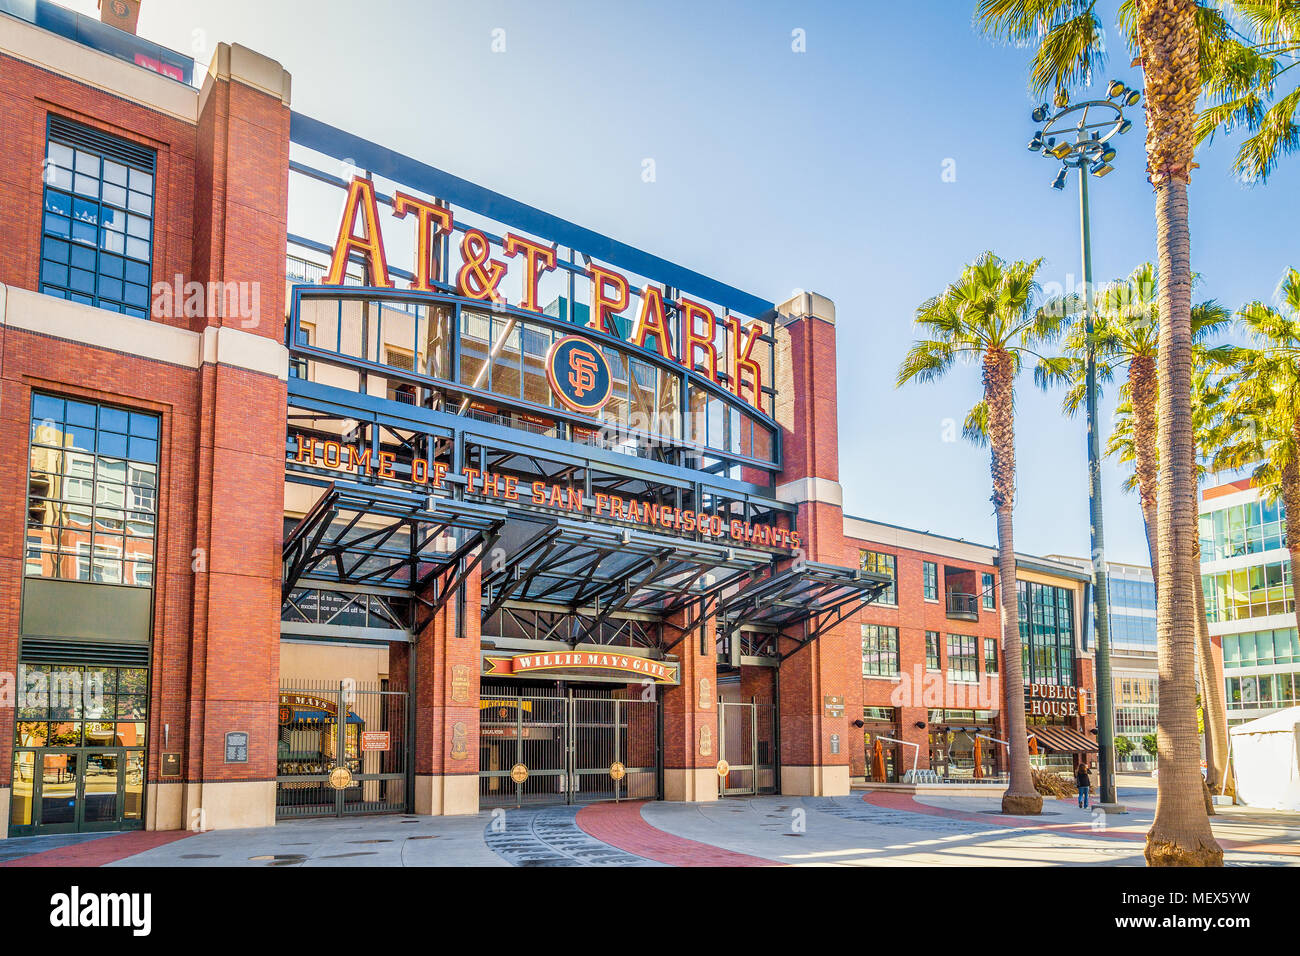 Panorama view of historic AT&T Park baseball park, home of the San Francisco Giants professional baseball franchise, on a sunny day in summer - Stock Image